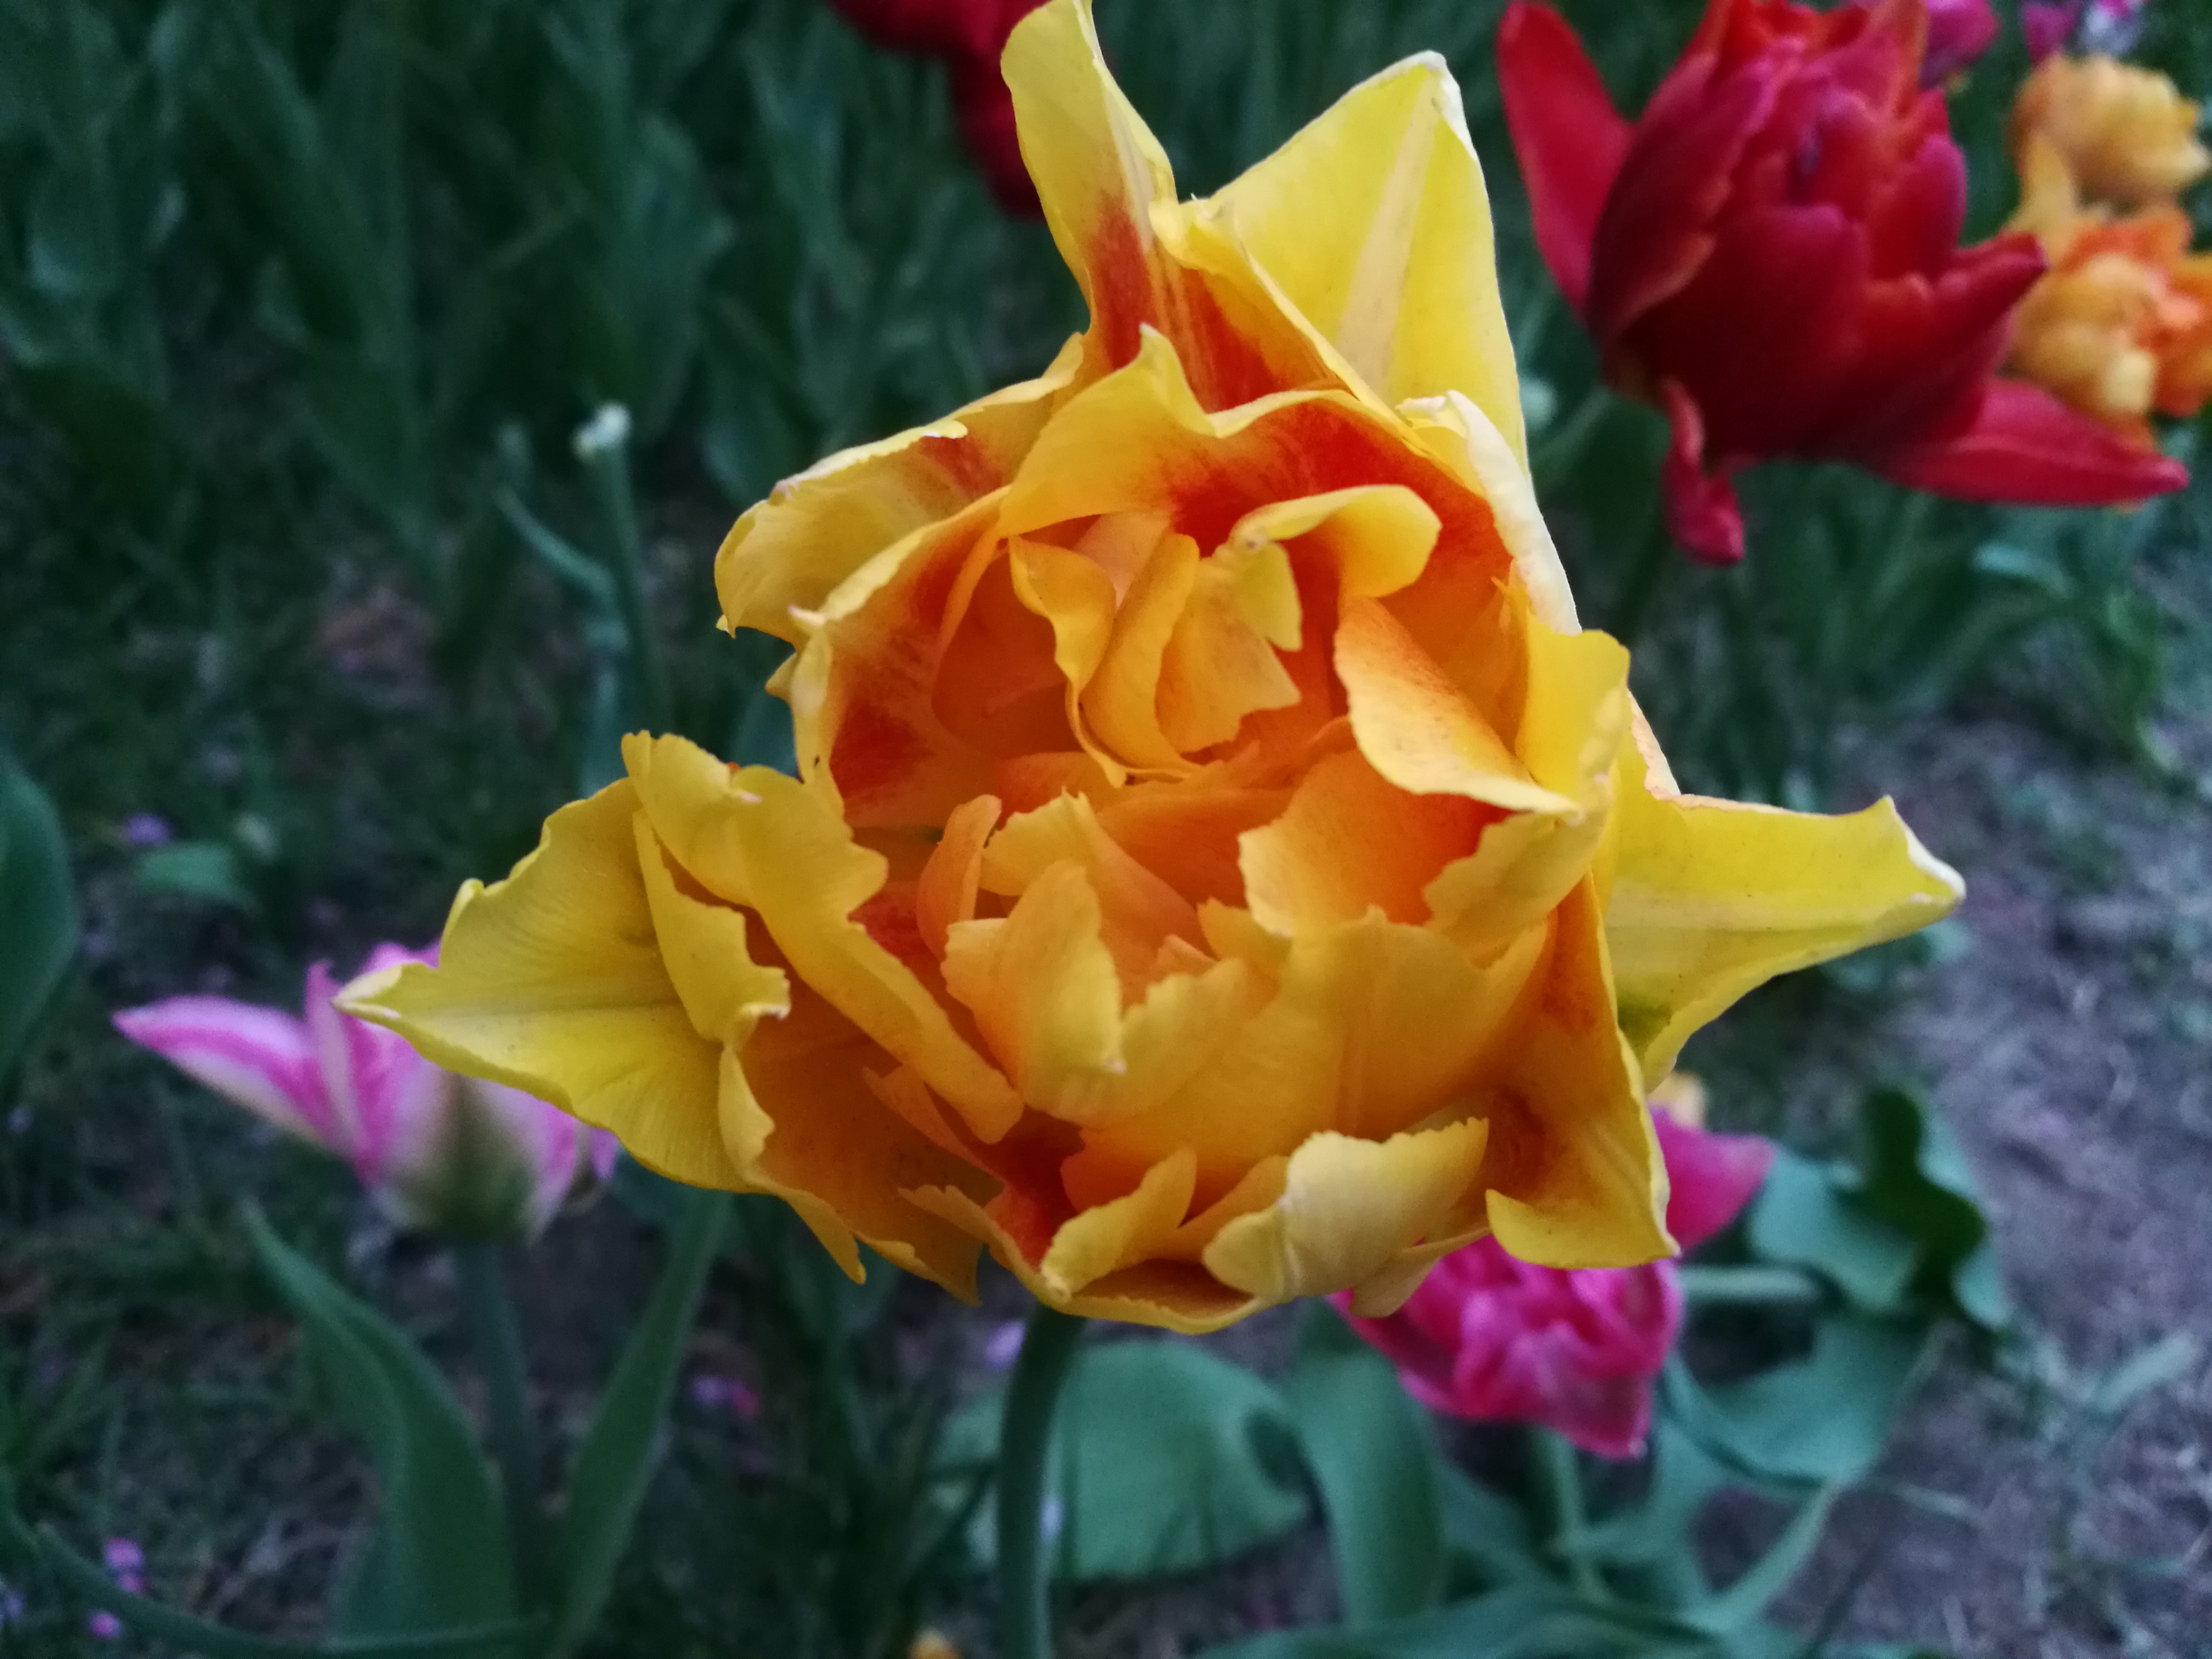 A tulip by any other name